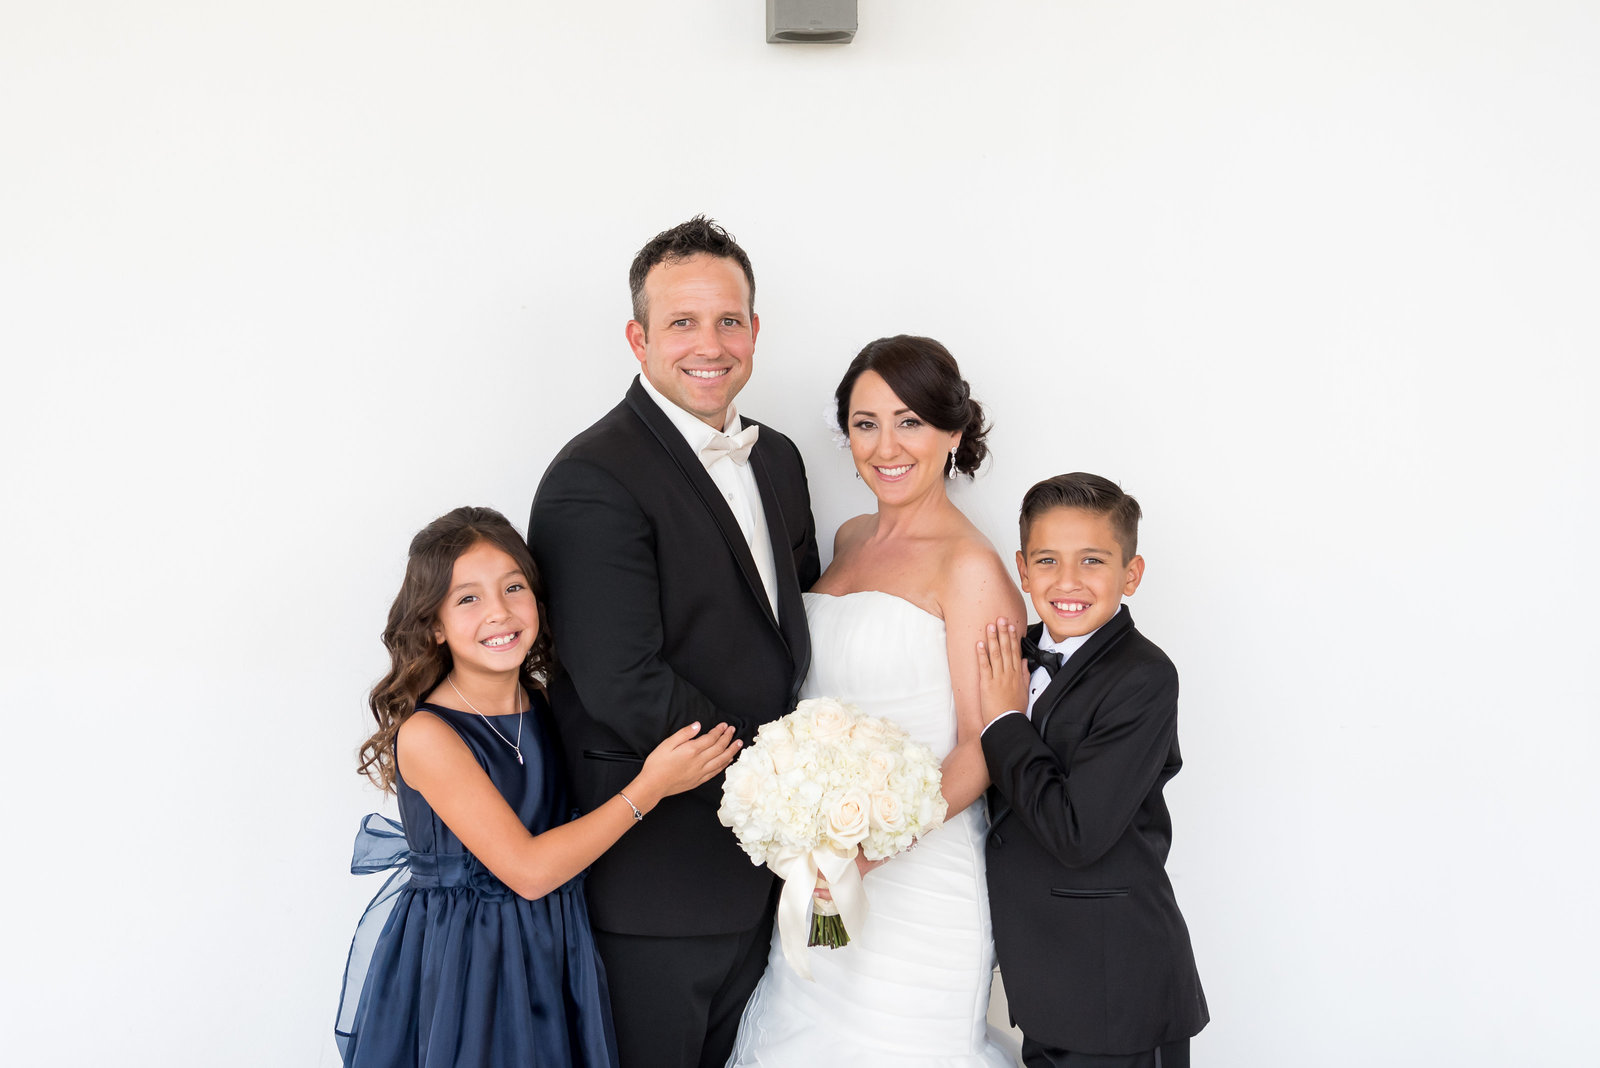 Orange County Laura + Brad Newborn Family Wedding Maternity Photographer pasea hotel